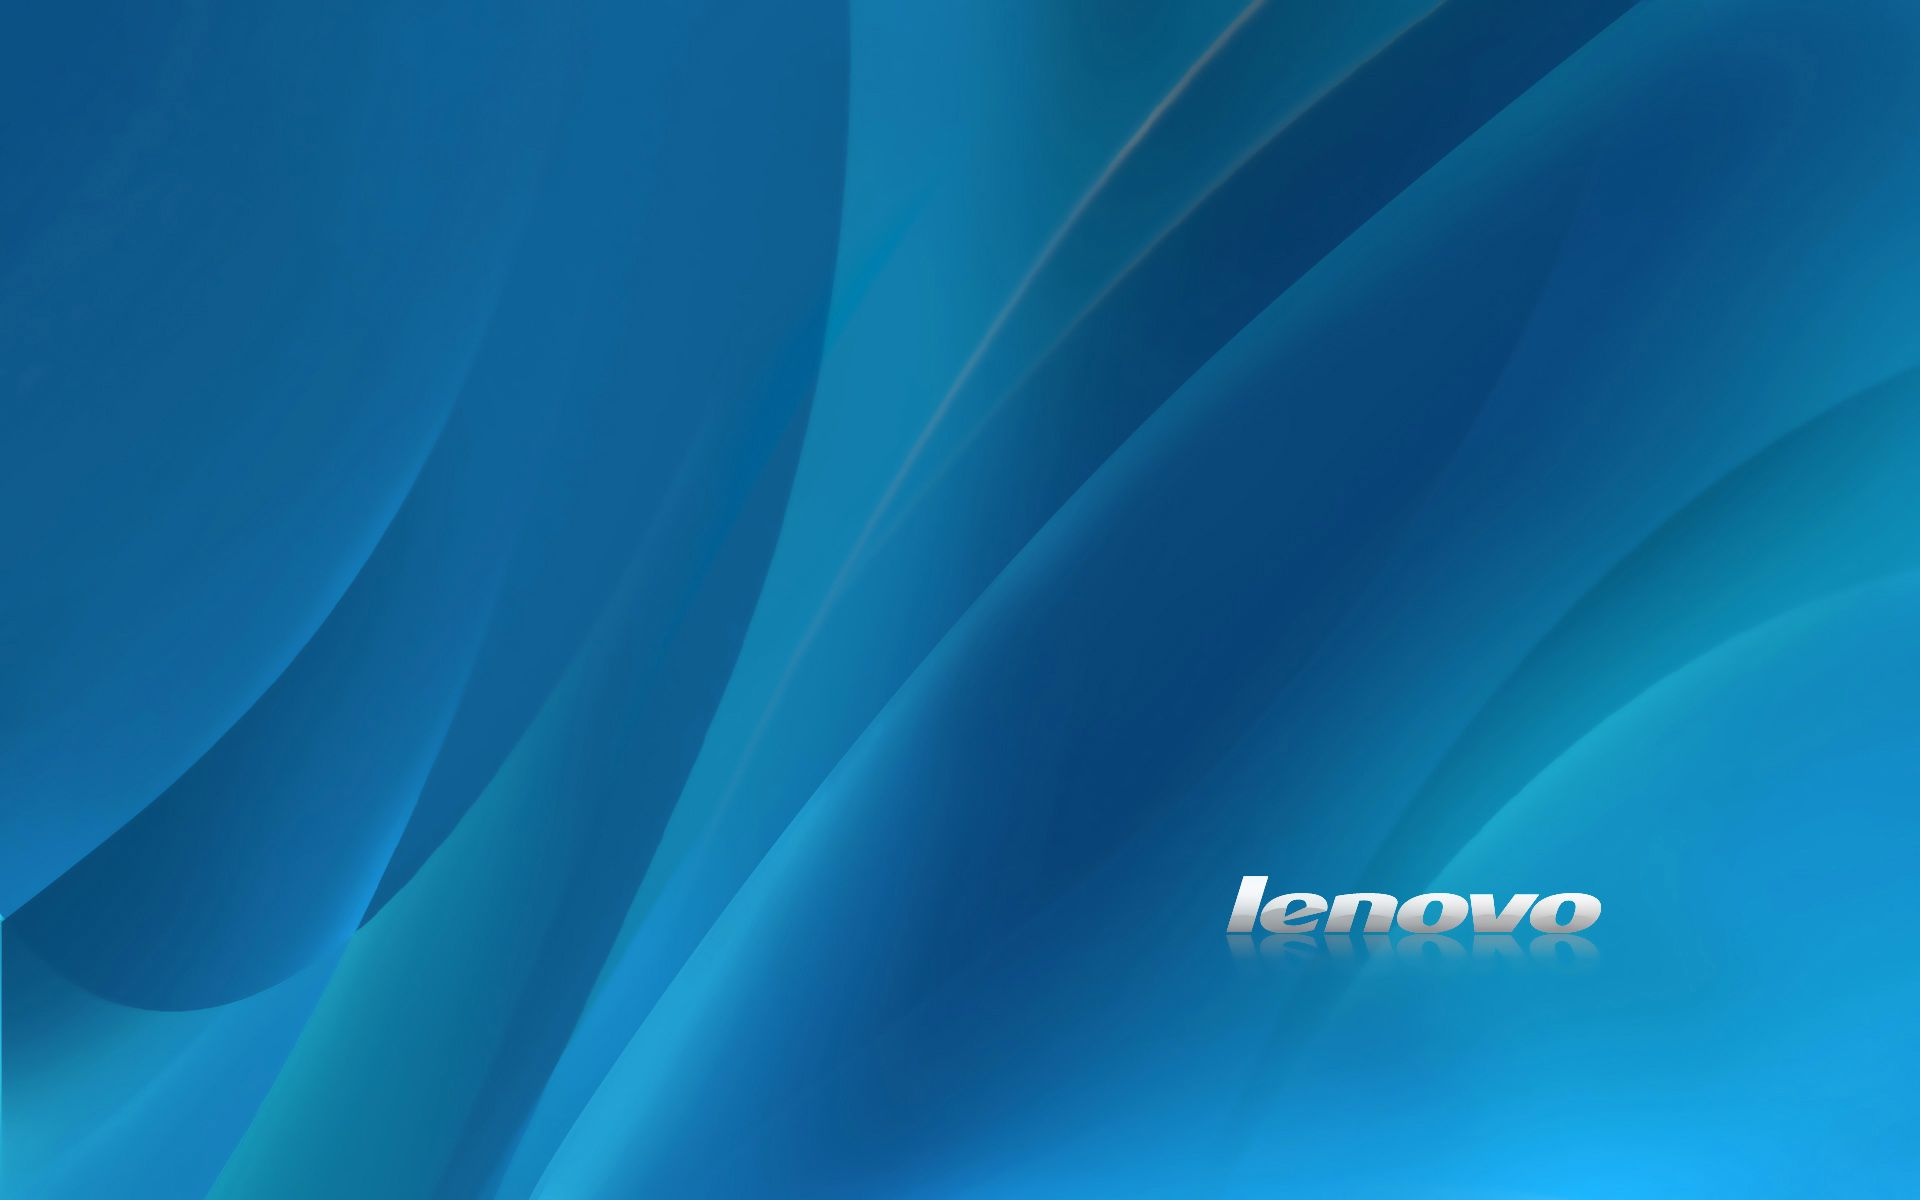 Undefined Wallpaper Lenovo 41 Wallpapers Adorable Wallpapers Lenovo Wallpapers Download Wallpaper Hd Iphone Wallpaper Ios